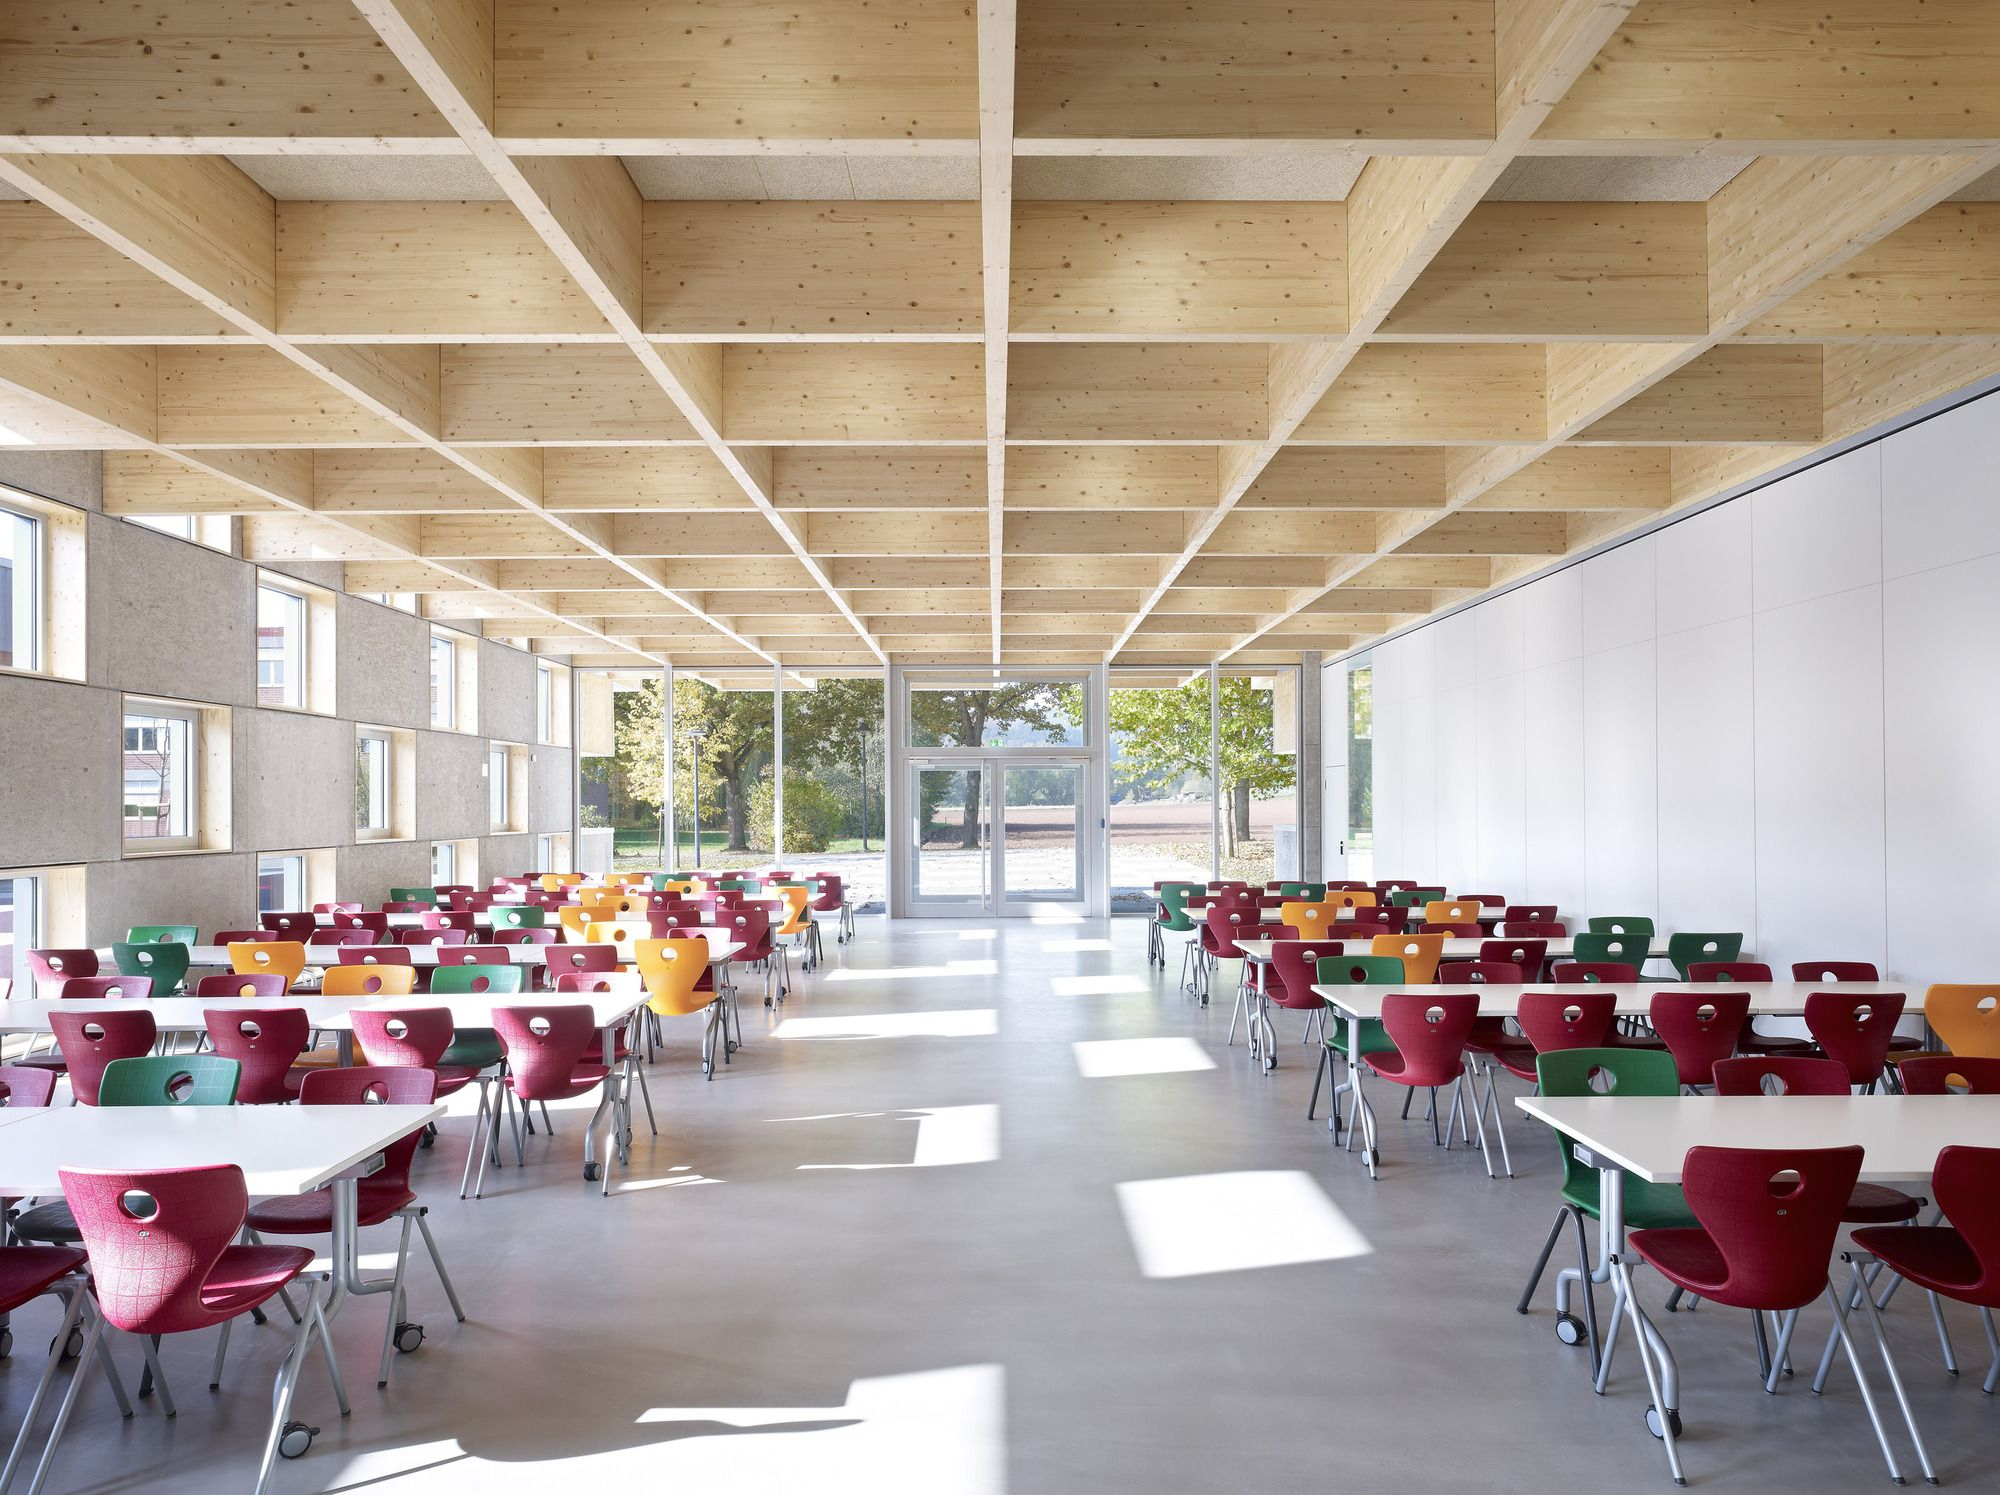 Interior design for school canteen pictures ideas for - Architecture and interior design schools ...